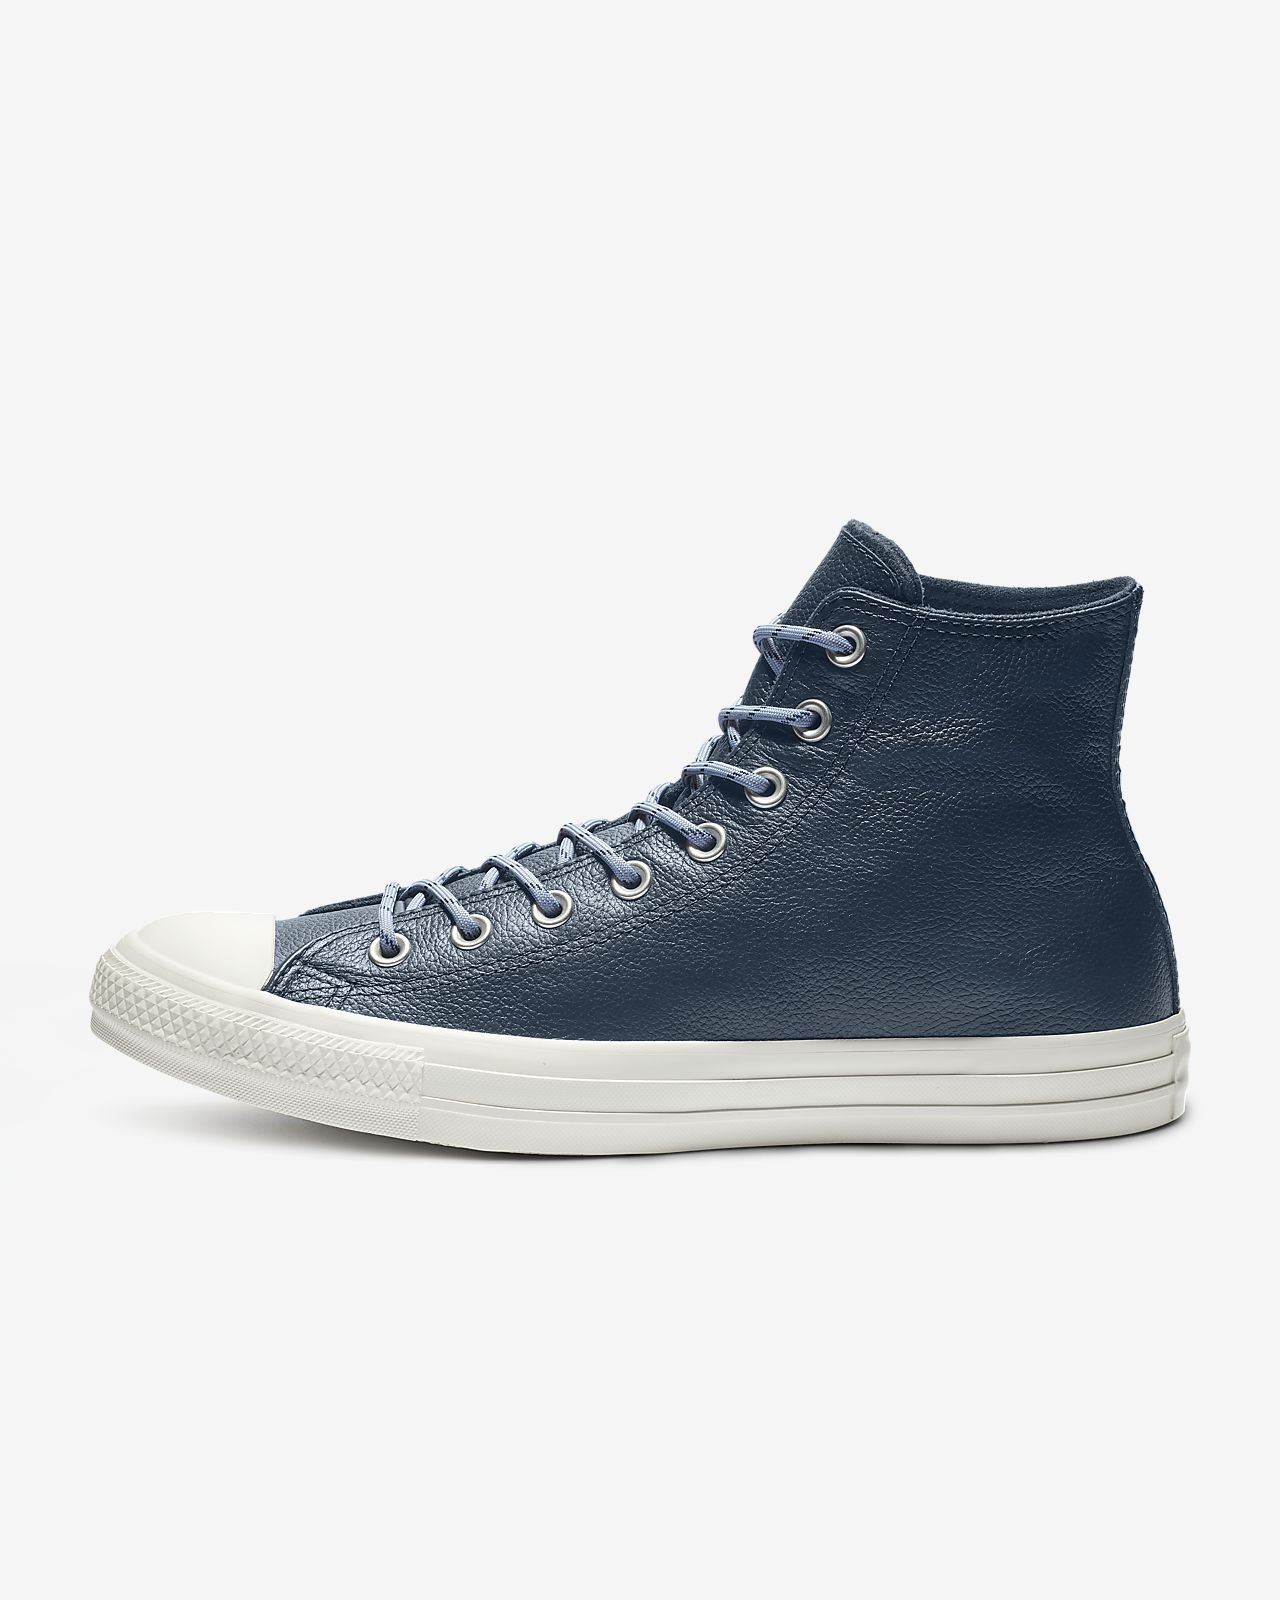 Converse Chuck Taylor All Star Limo Leather High Top Unisex Shoe